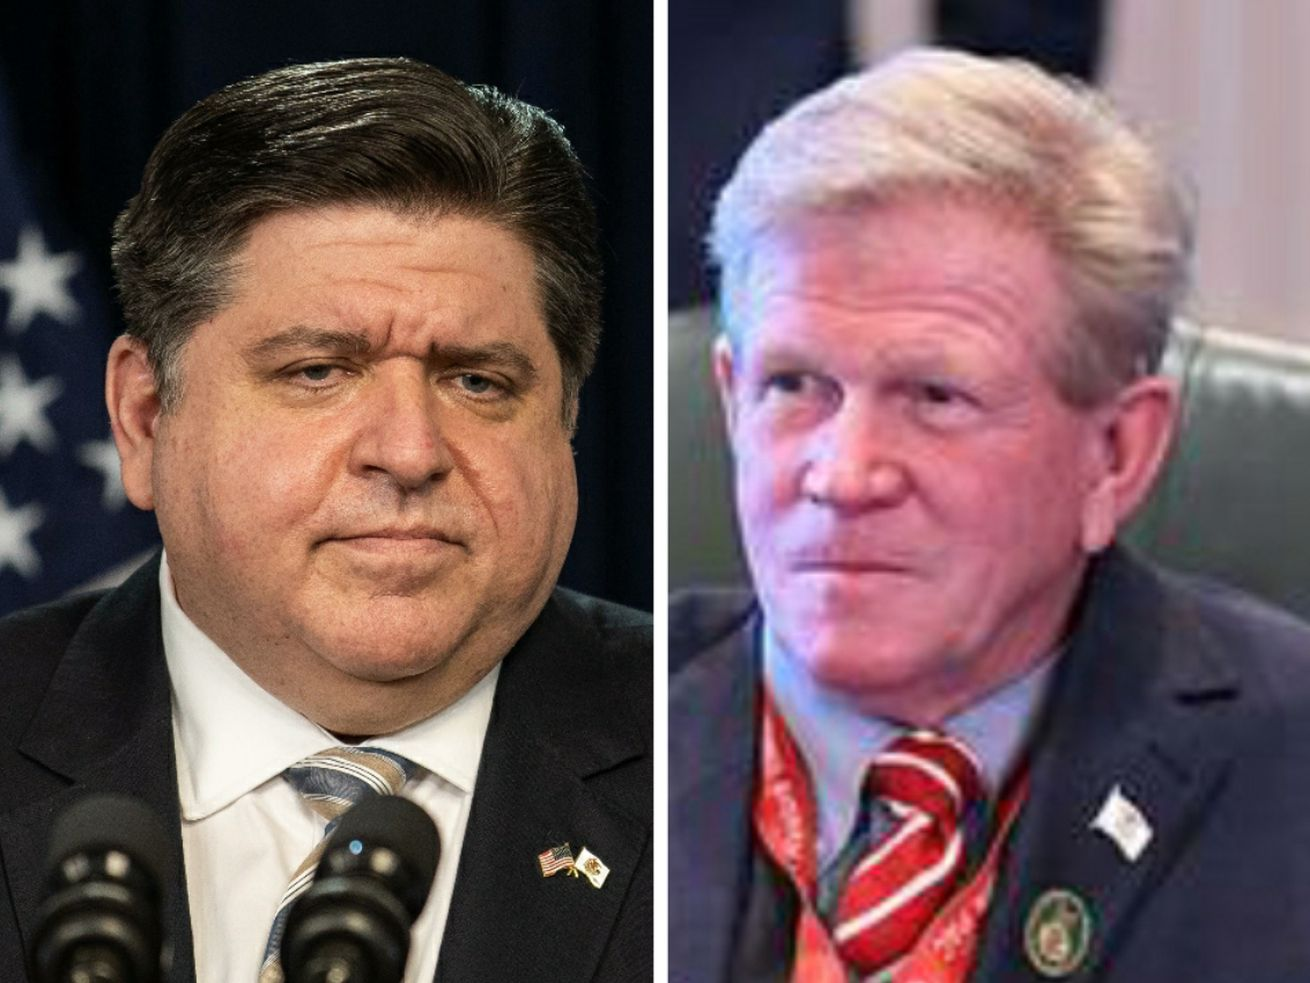 Gov. J.B. Pritzker, left, listens during a news conference Thursday; State Rep. Chris Miller, right, at an Illinois House session in 2019.